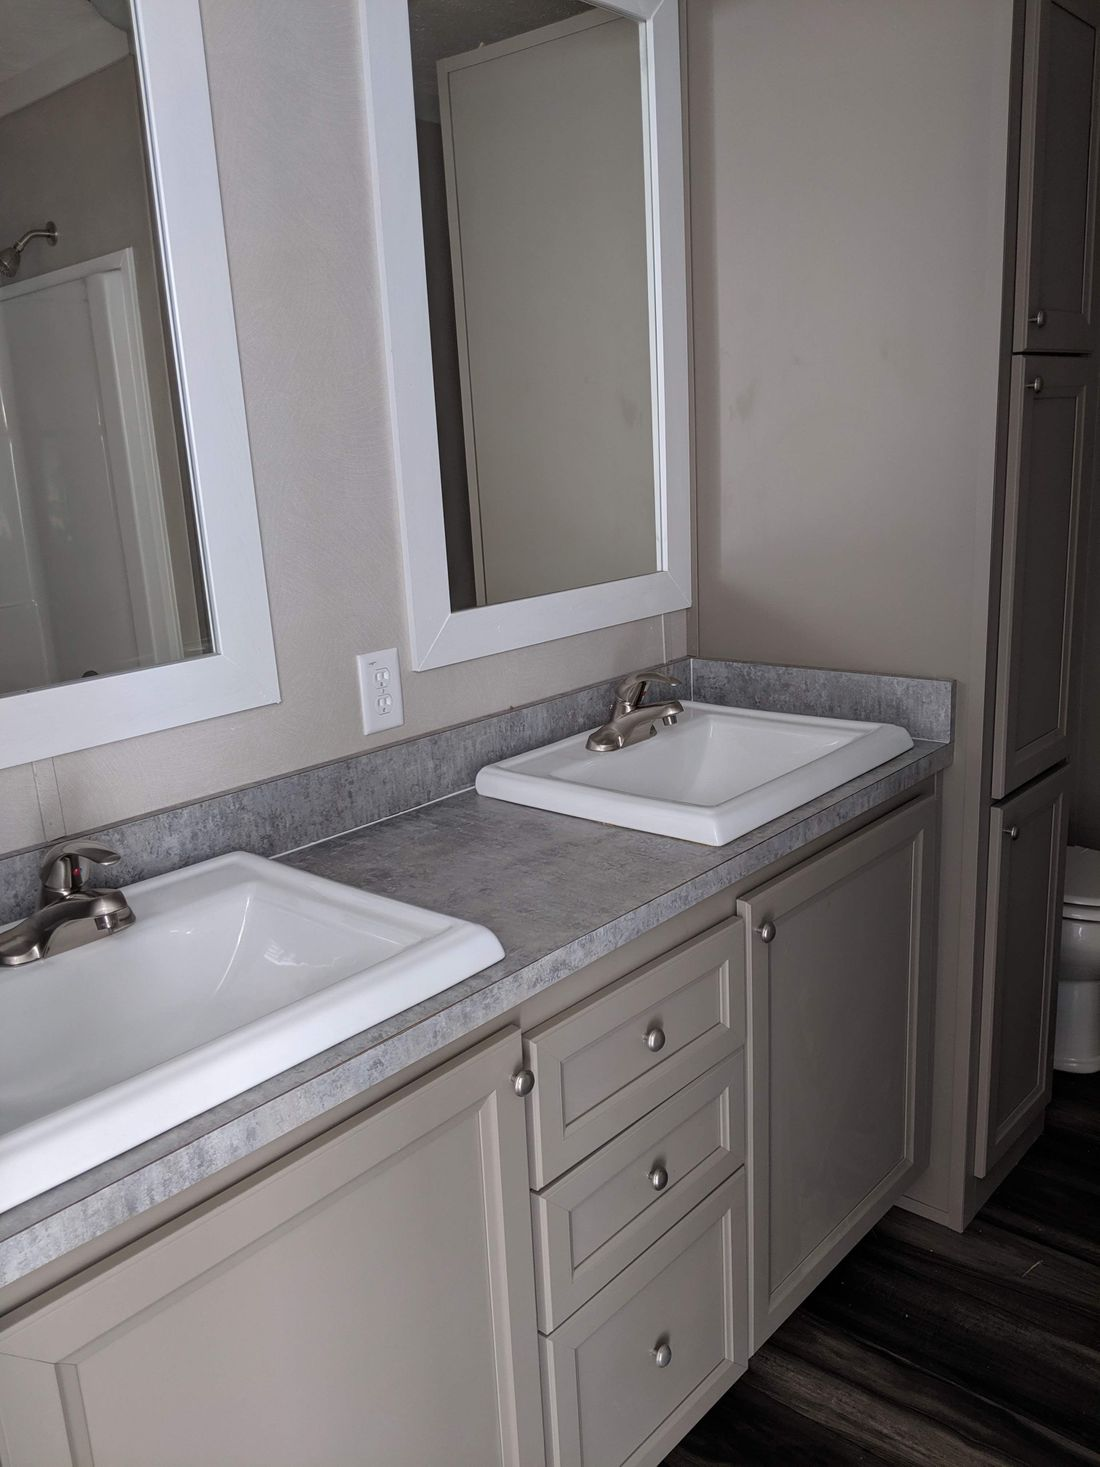 The CS2856-A Master Bathroom. This Manufactured Mobile Home features 4 bedrooms and 2 baths.